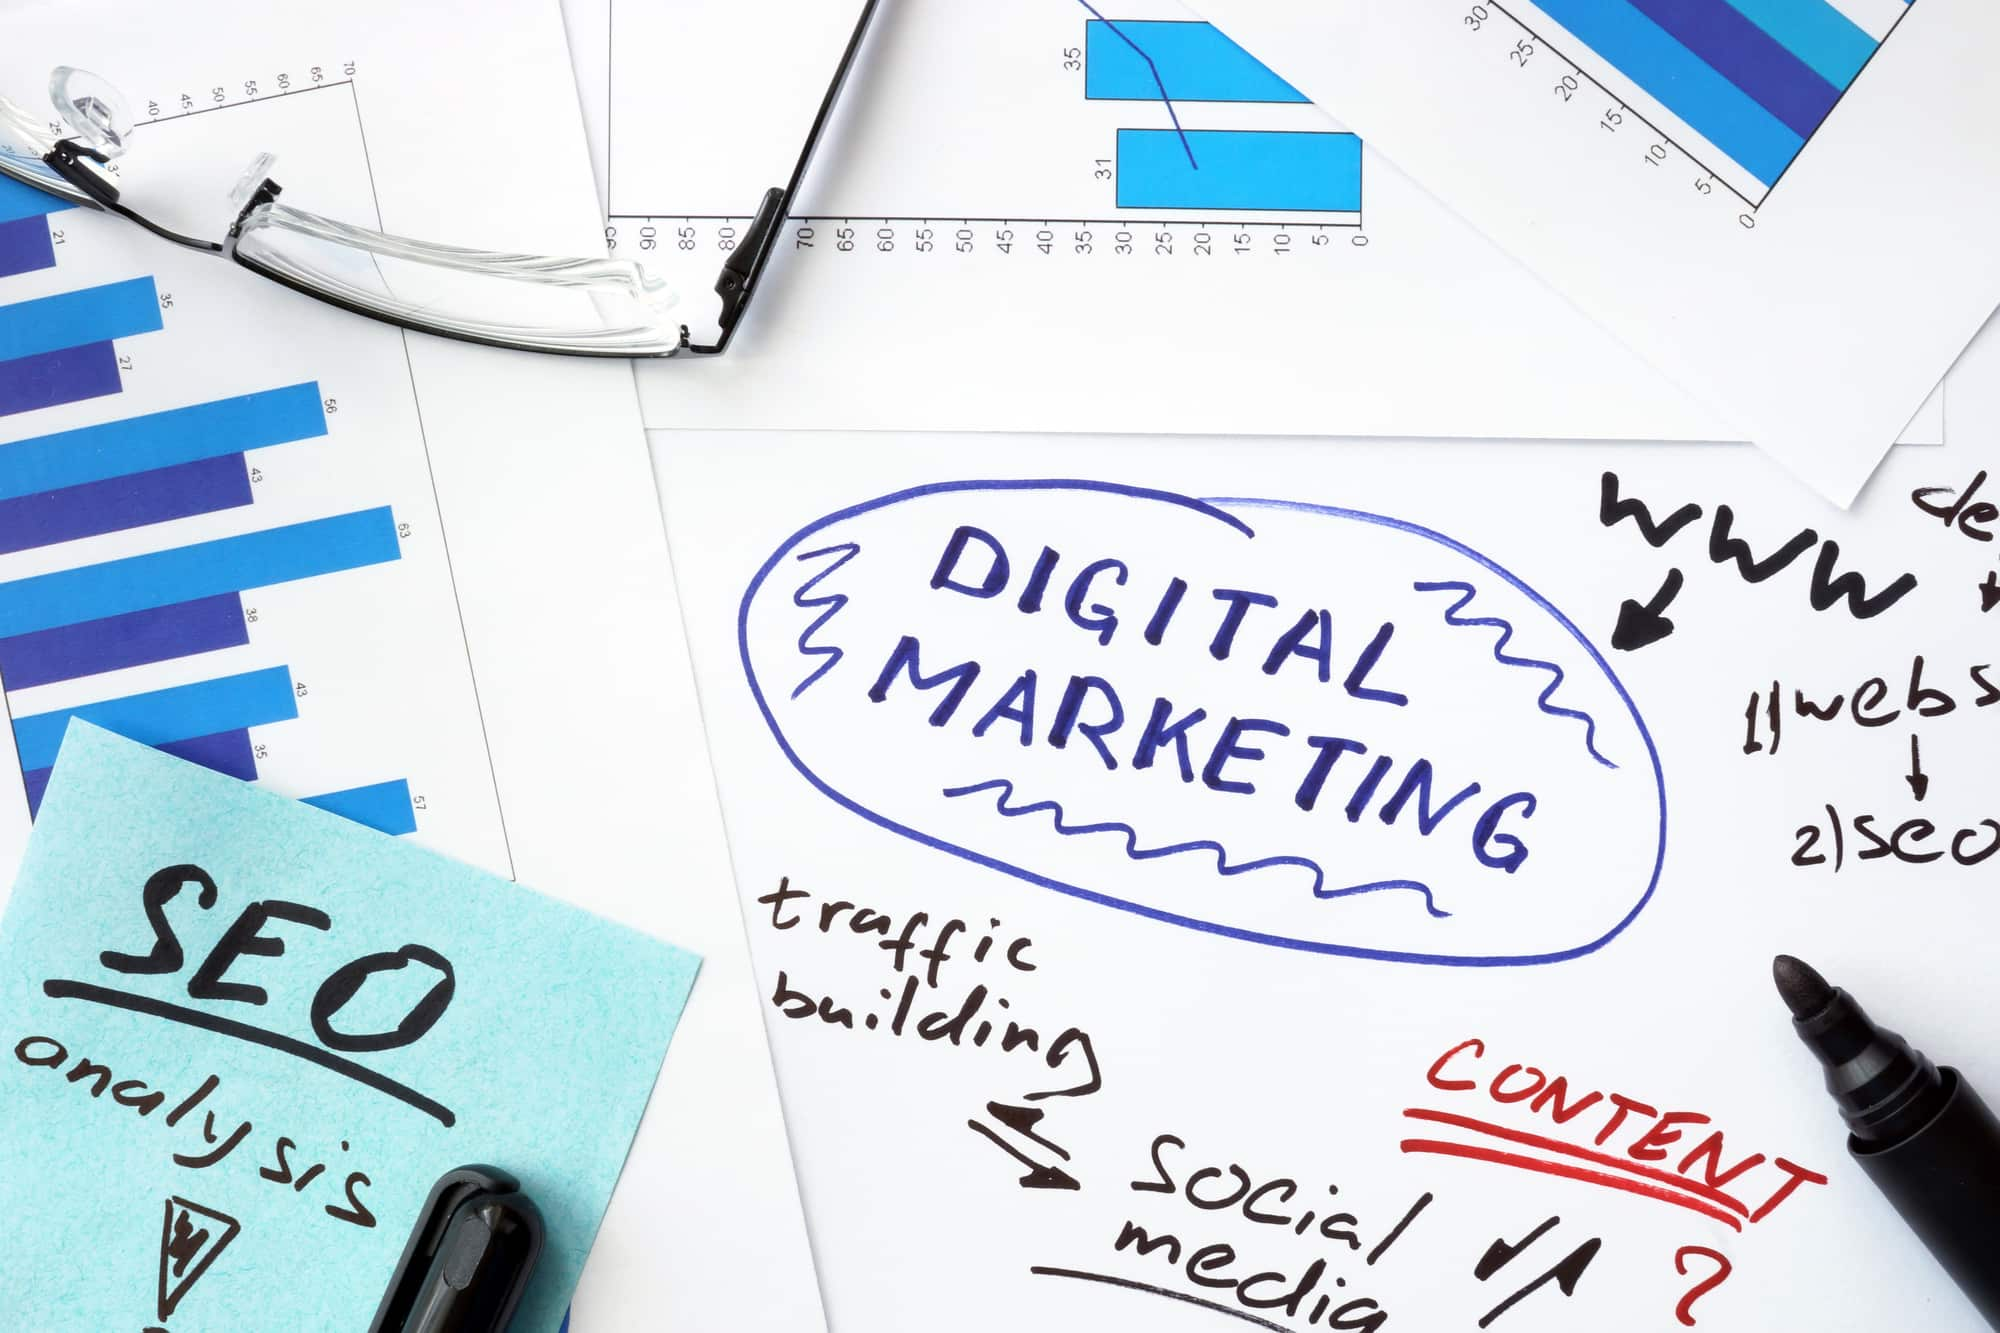 Why is SEO an Effective Digital Marketing Strategy?